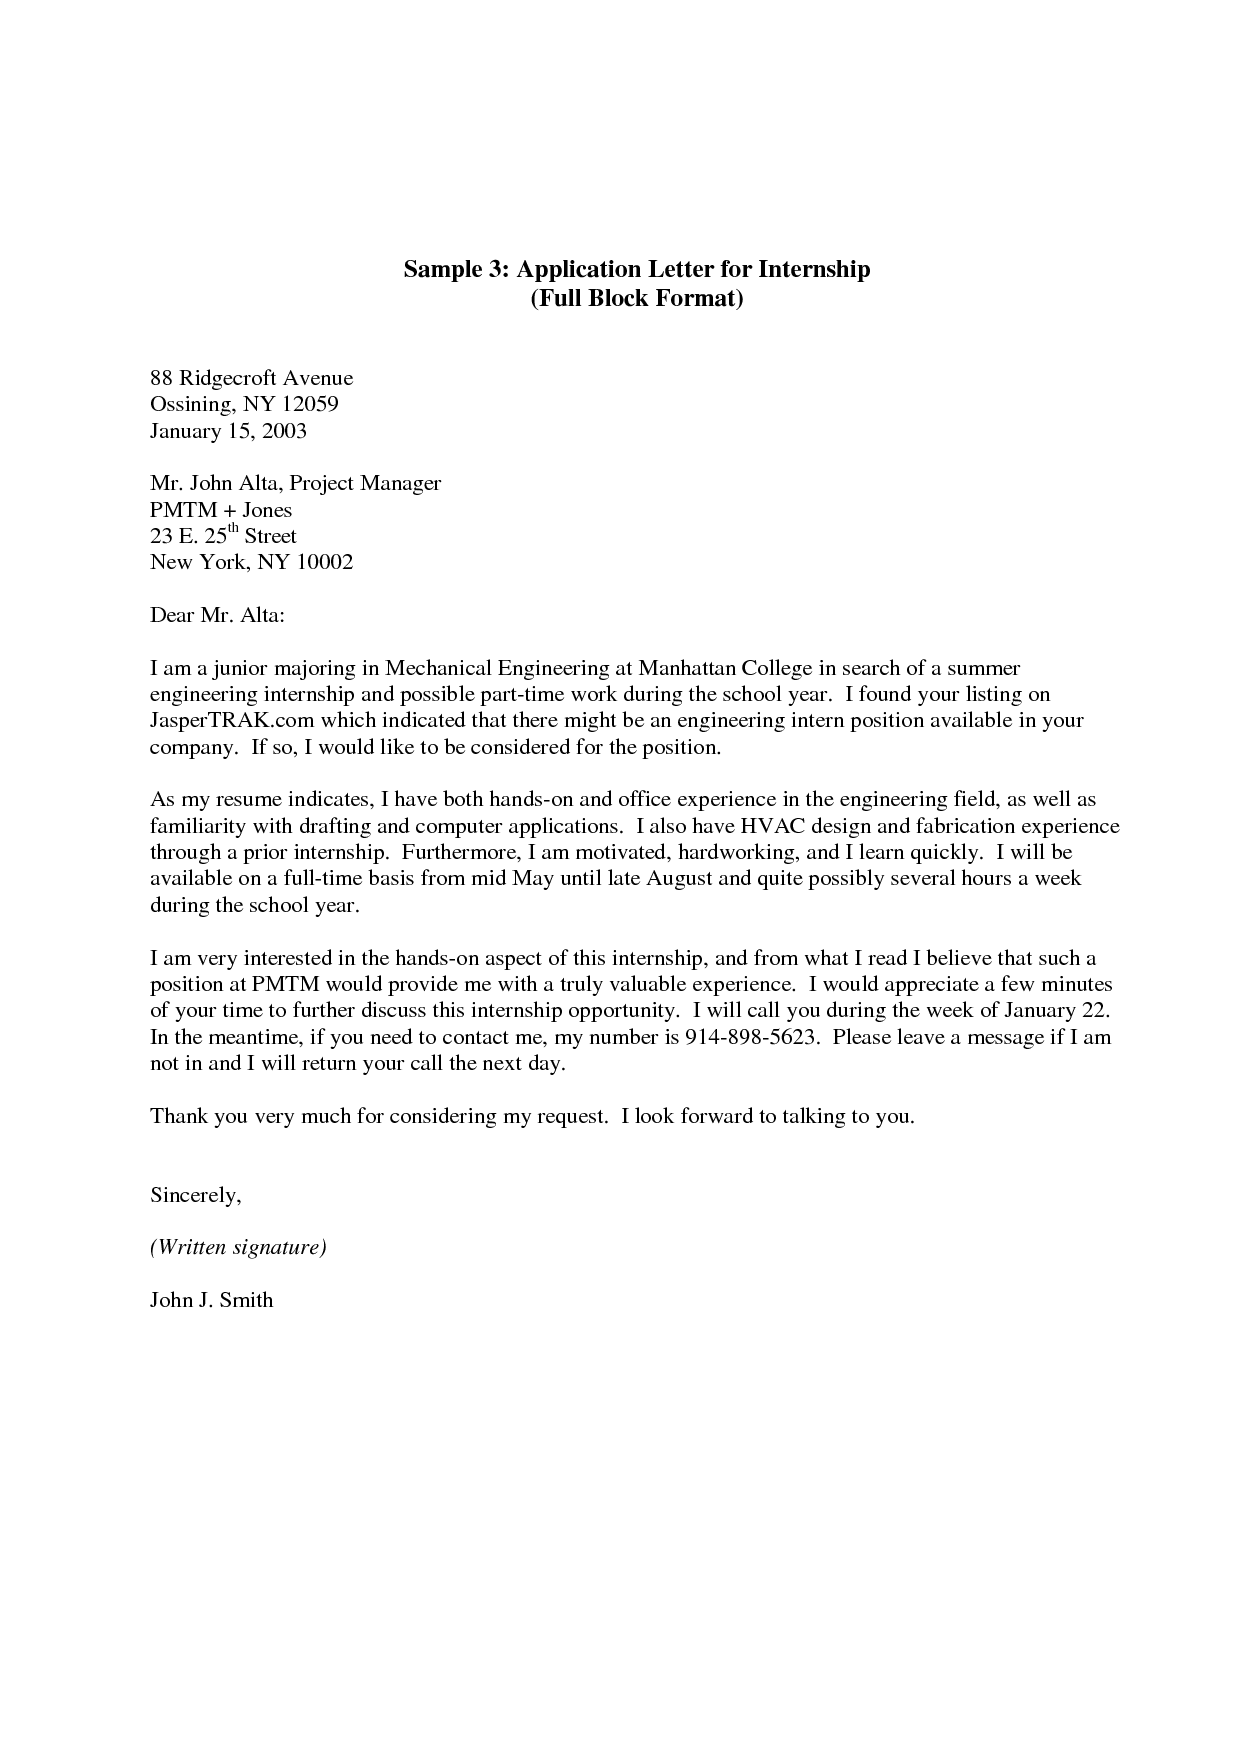 internship application letter here is a sample cover letter for applying for a job or - Cover Letters For Internships